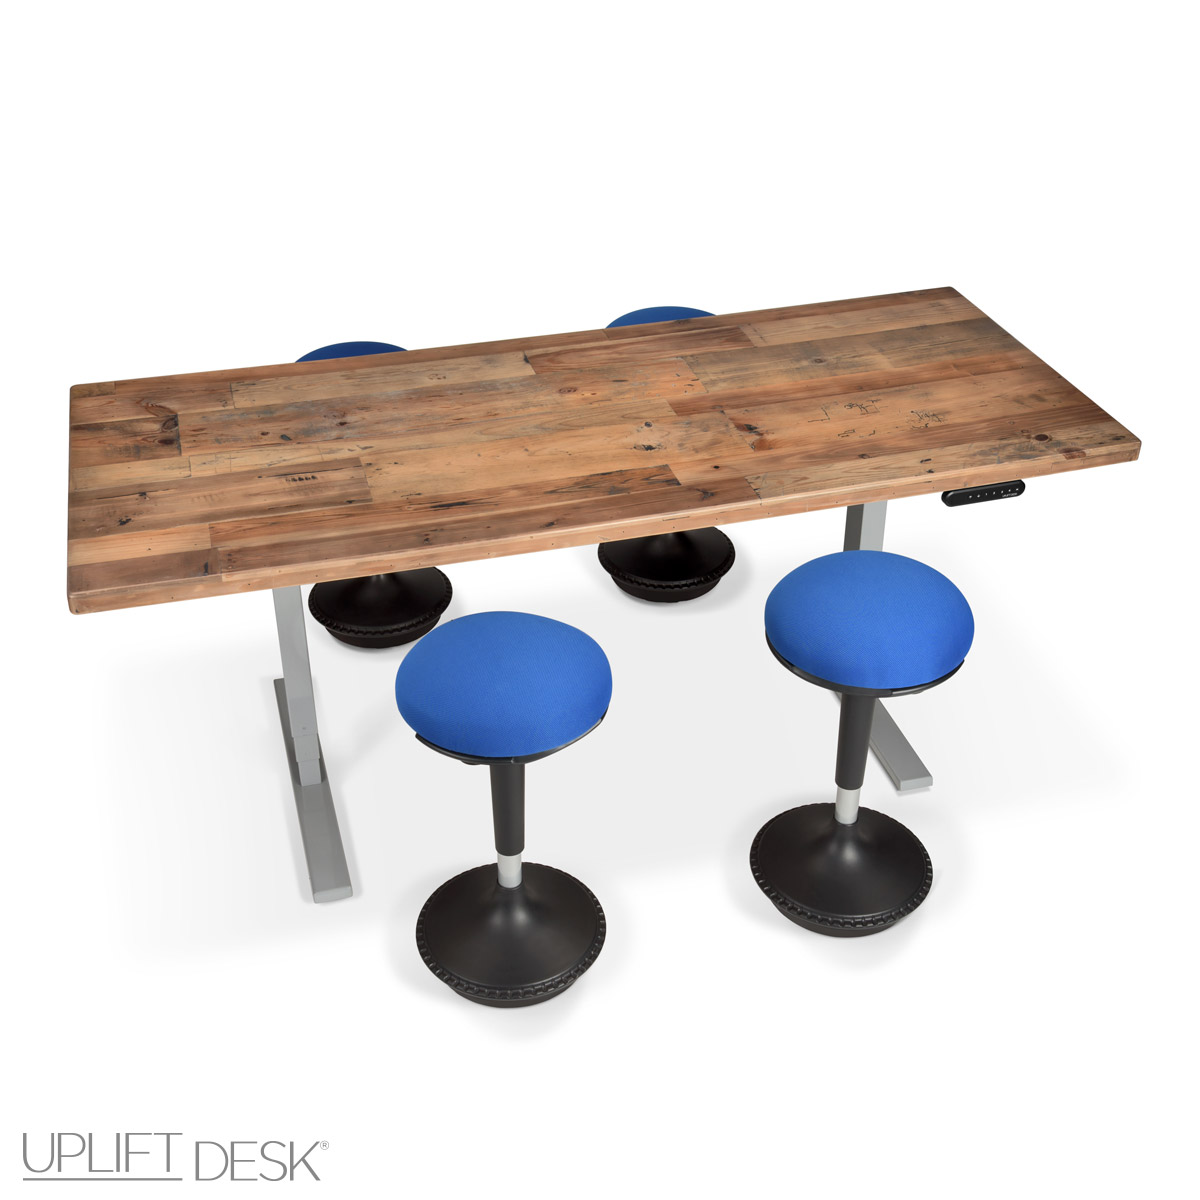 UPLIFT Woodland Conference Table